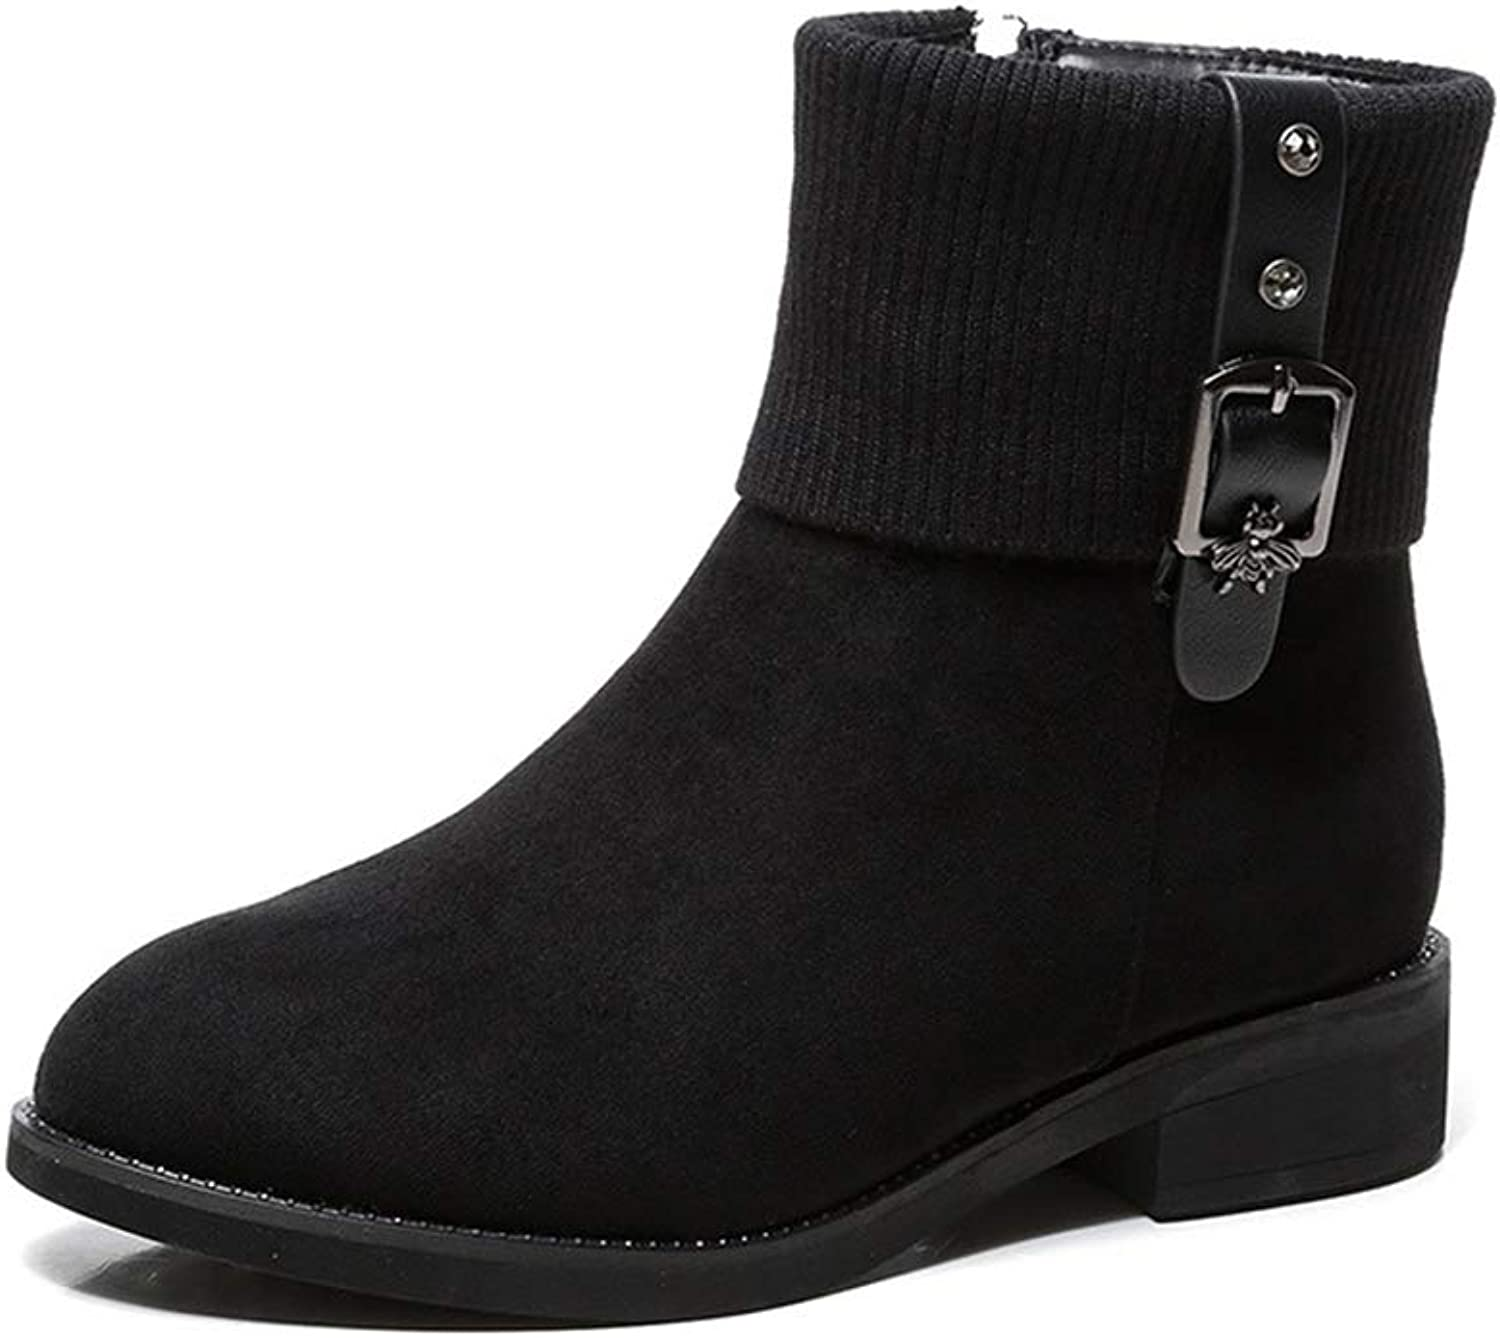 Women's Booties, Plus Velvet Thick Heel Wild Fashion Boots Ladies Winter New Comfortable Martin Boots (color   Black, Size   36)